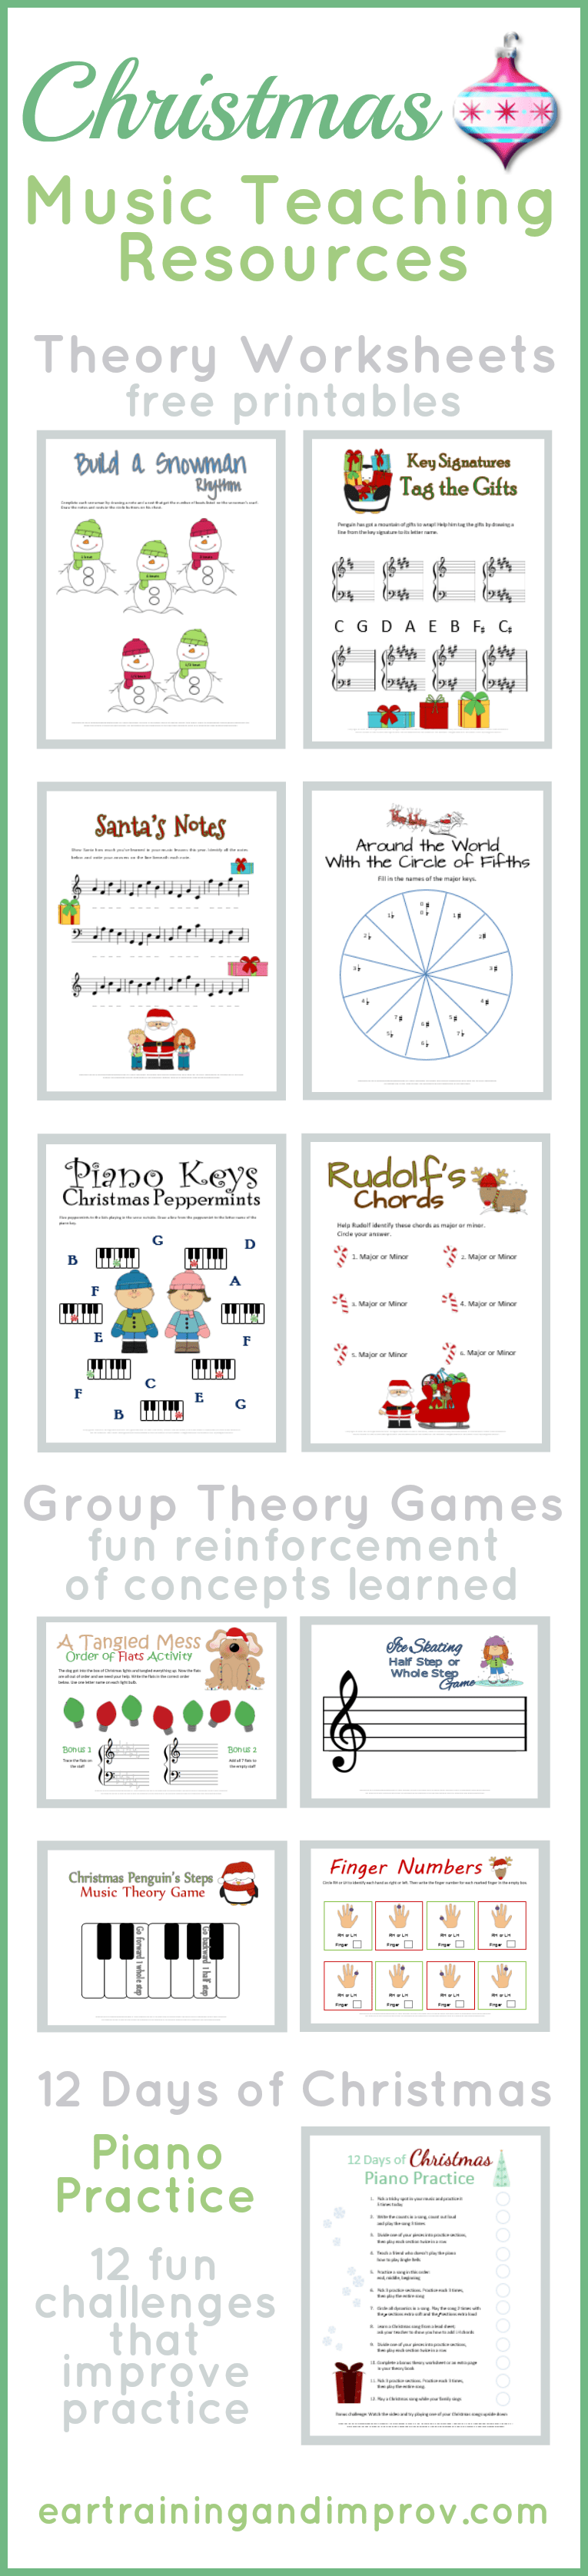 christmas music theory worksheets